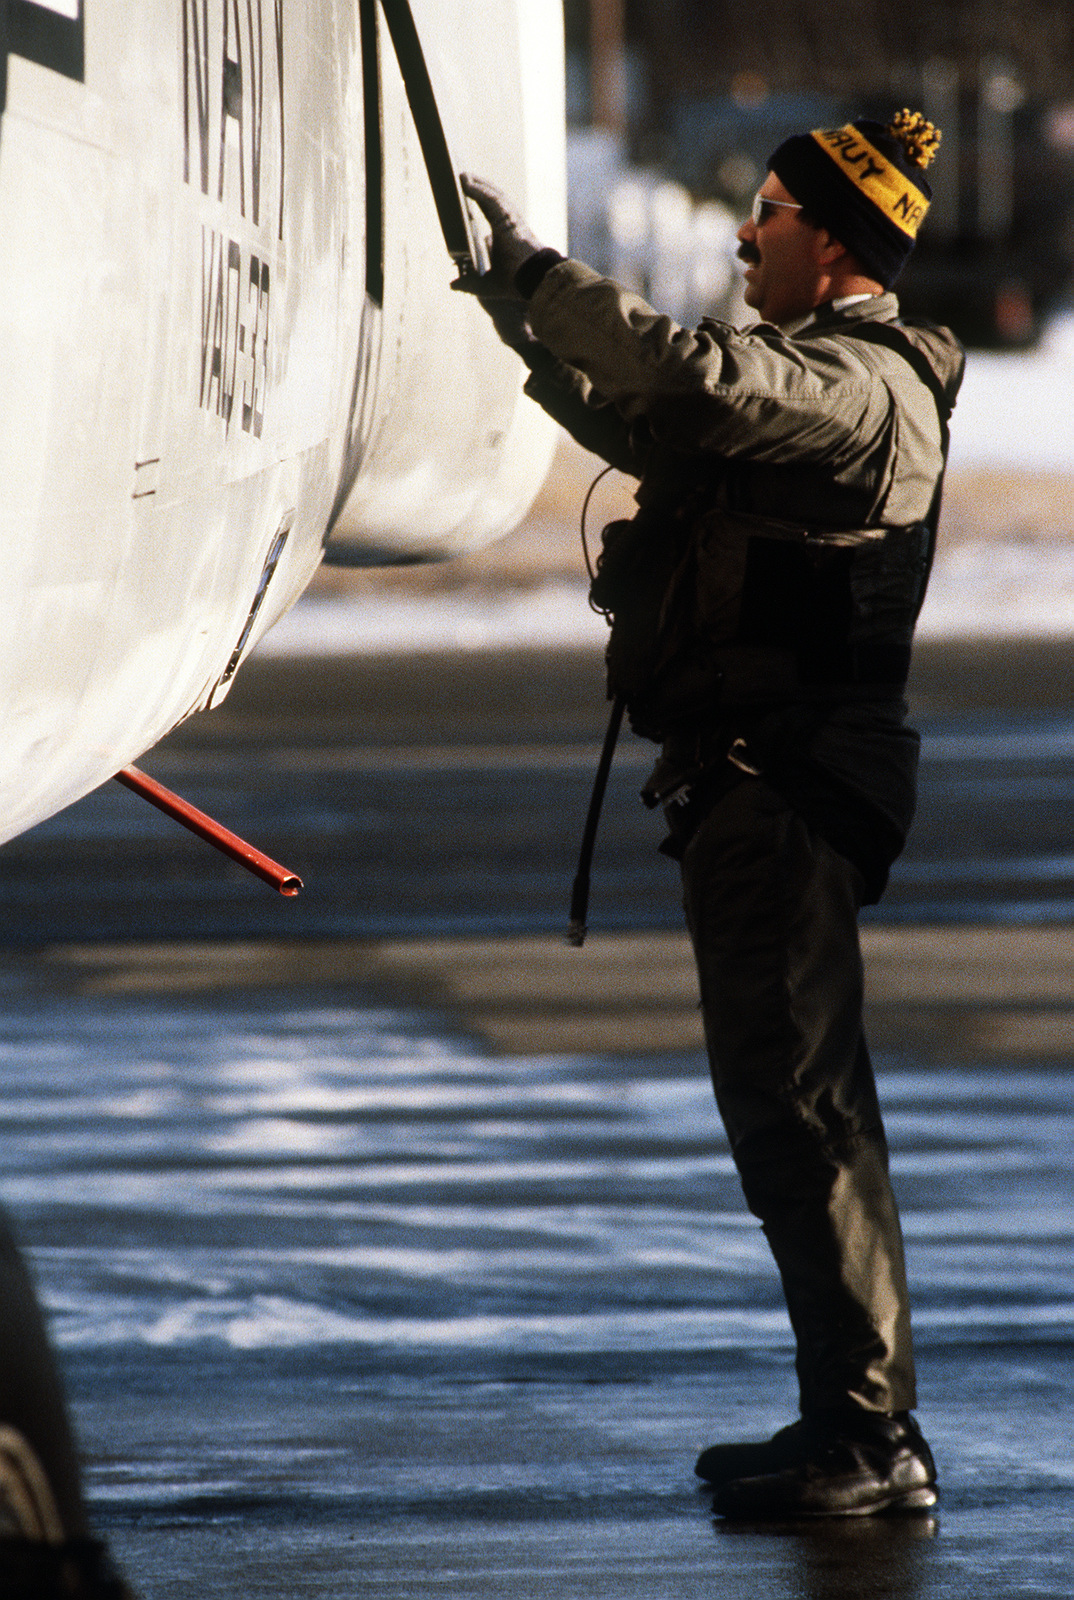 A crewman inspects an A-3 Skywarrior aircraft prior to a mission